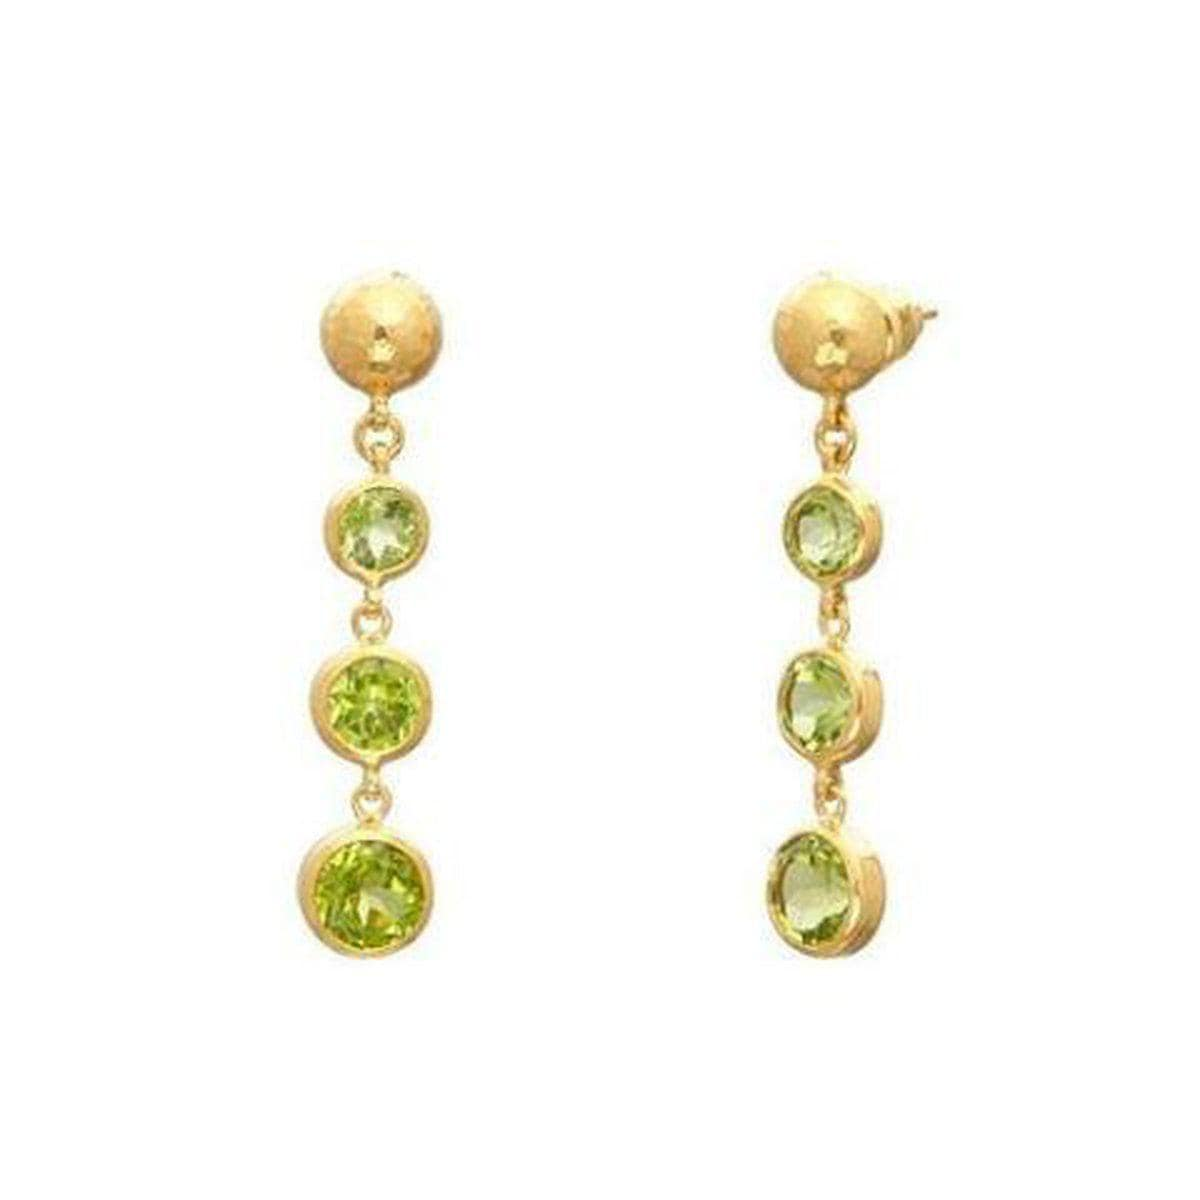 Rainbow 24K Gold Peridot Earrings - E-U25816-PD-GURHAN-Renee Taylor Gallery